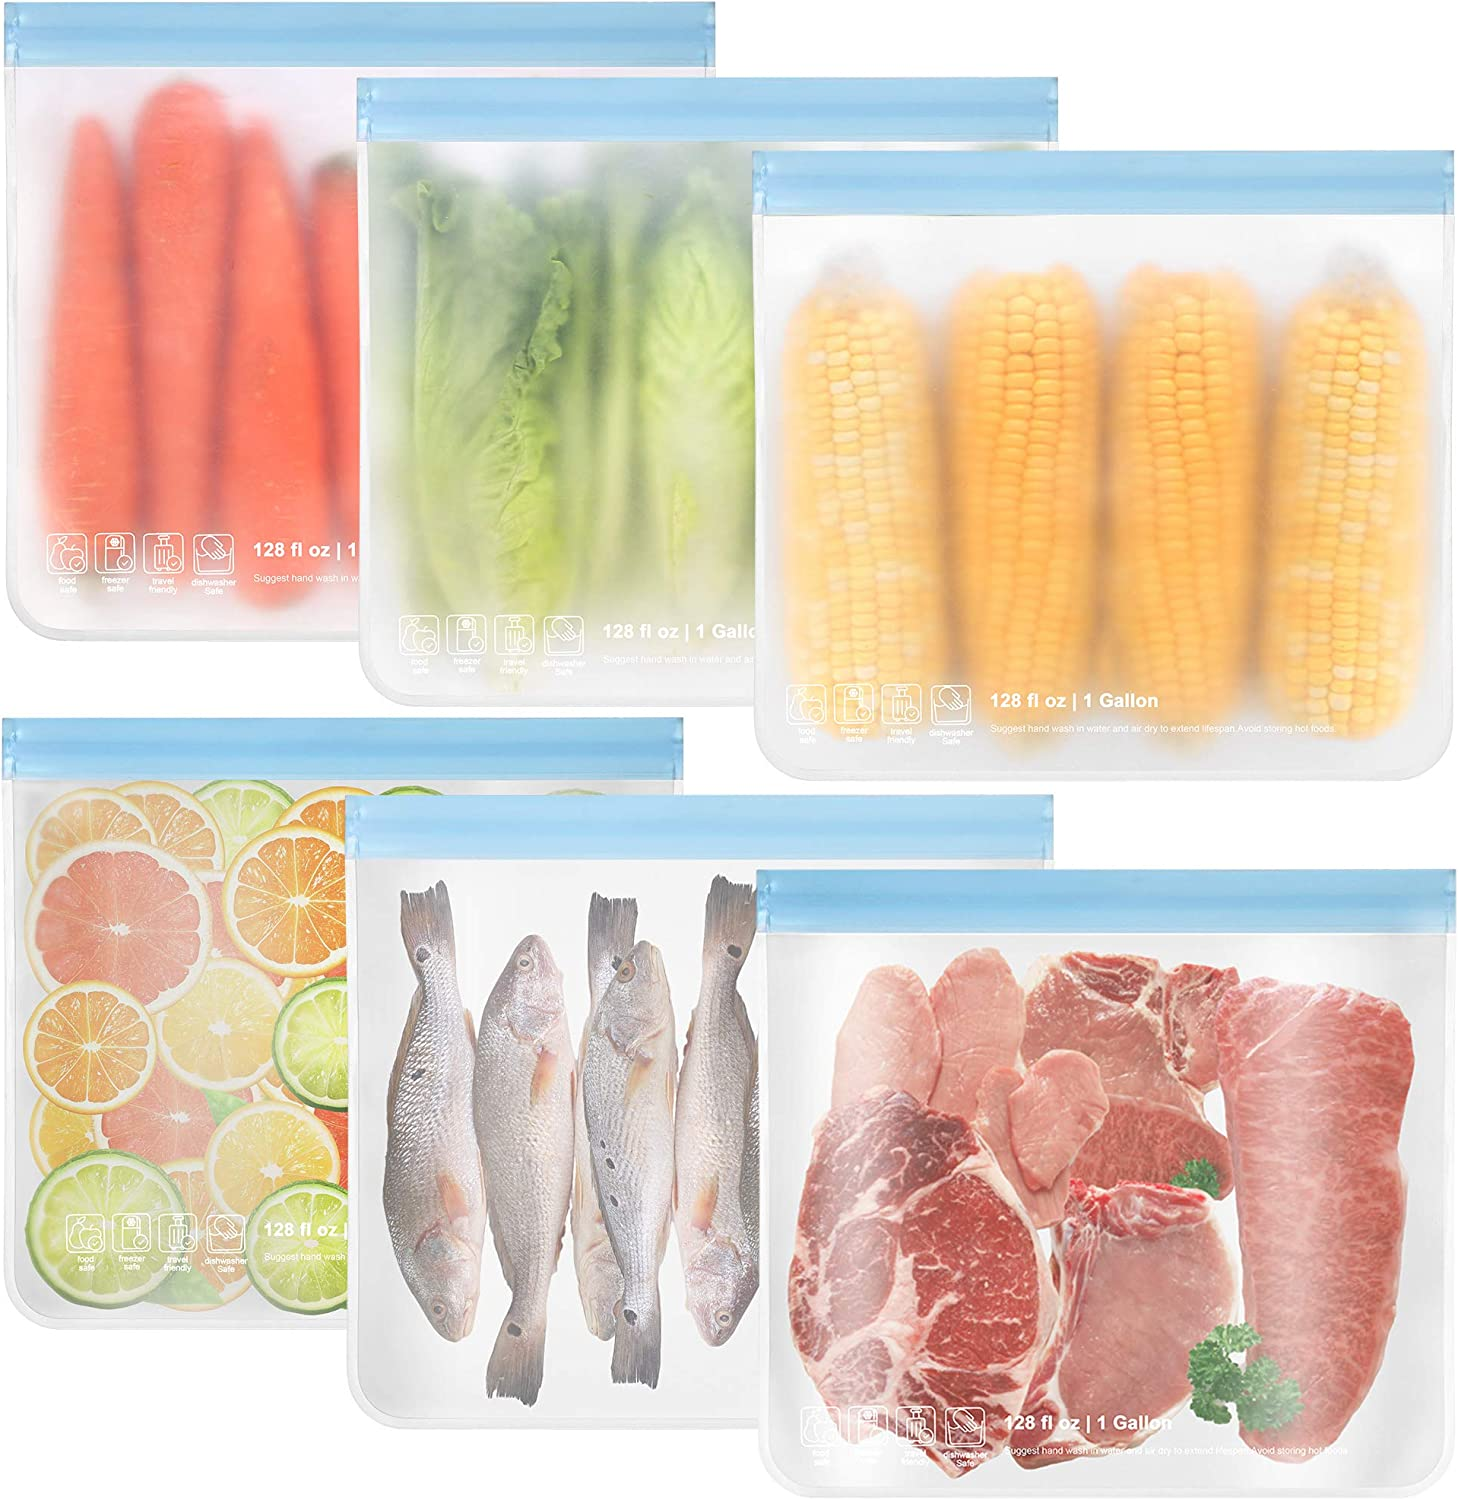 6 Pack Dishwasher Safe Reusable Gallon Freezer Bags, Reusable Food Storage Bags Extra Thick Leakproof Silicone & Plastic Free Zip-lock Bags For Marinate Meat Cereal Sandwich Snack Lunch